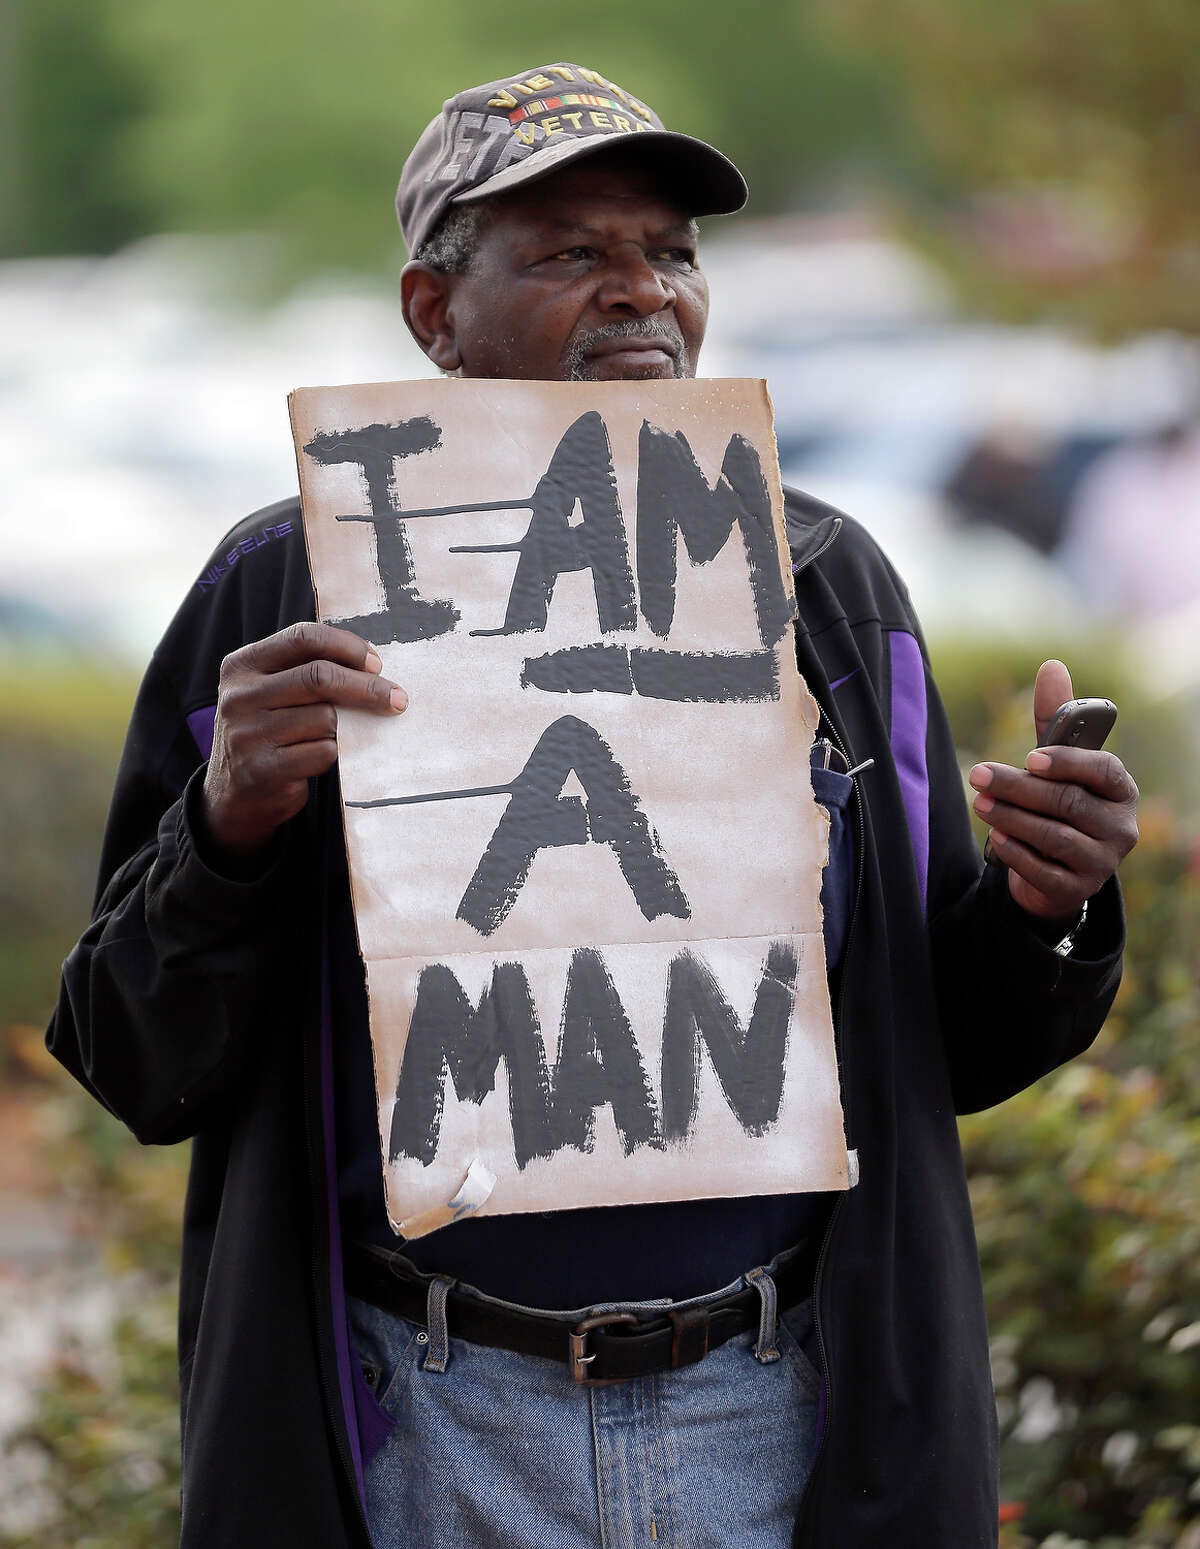 Robert Jackson holds a sign during a protest in shooting death of Walter Scott at city hall in North Charleston, S.C., Wednesday, April 8, 2015. Scott was killed by a North Charleston police office after a traffic stop on Saturday. The officer, Michael Thomas Slager, has been charged with murder. (AP Photo/Chuck Burton)